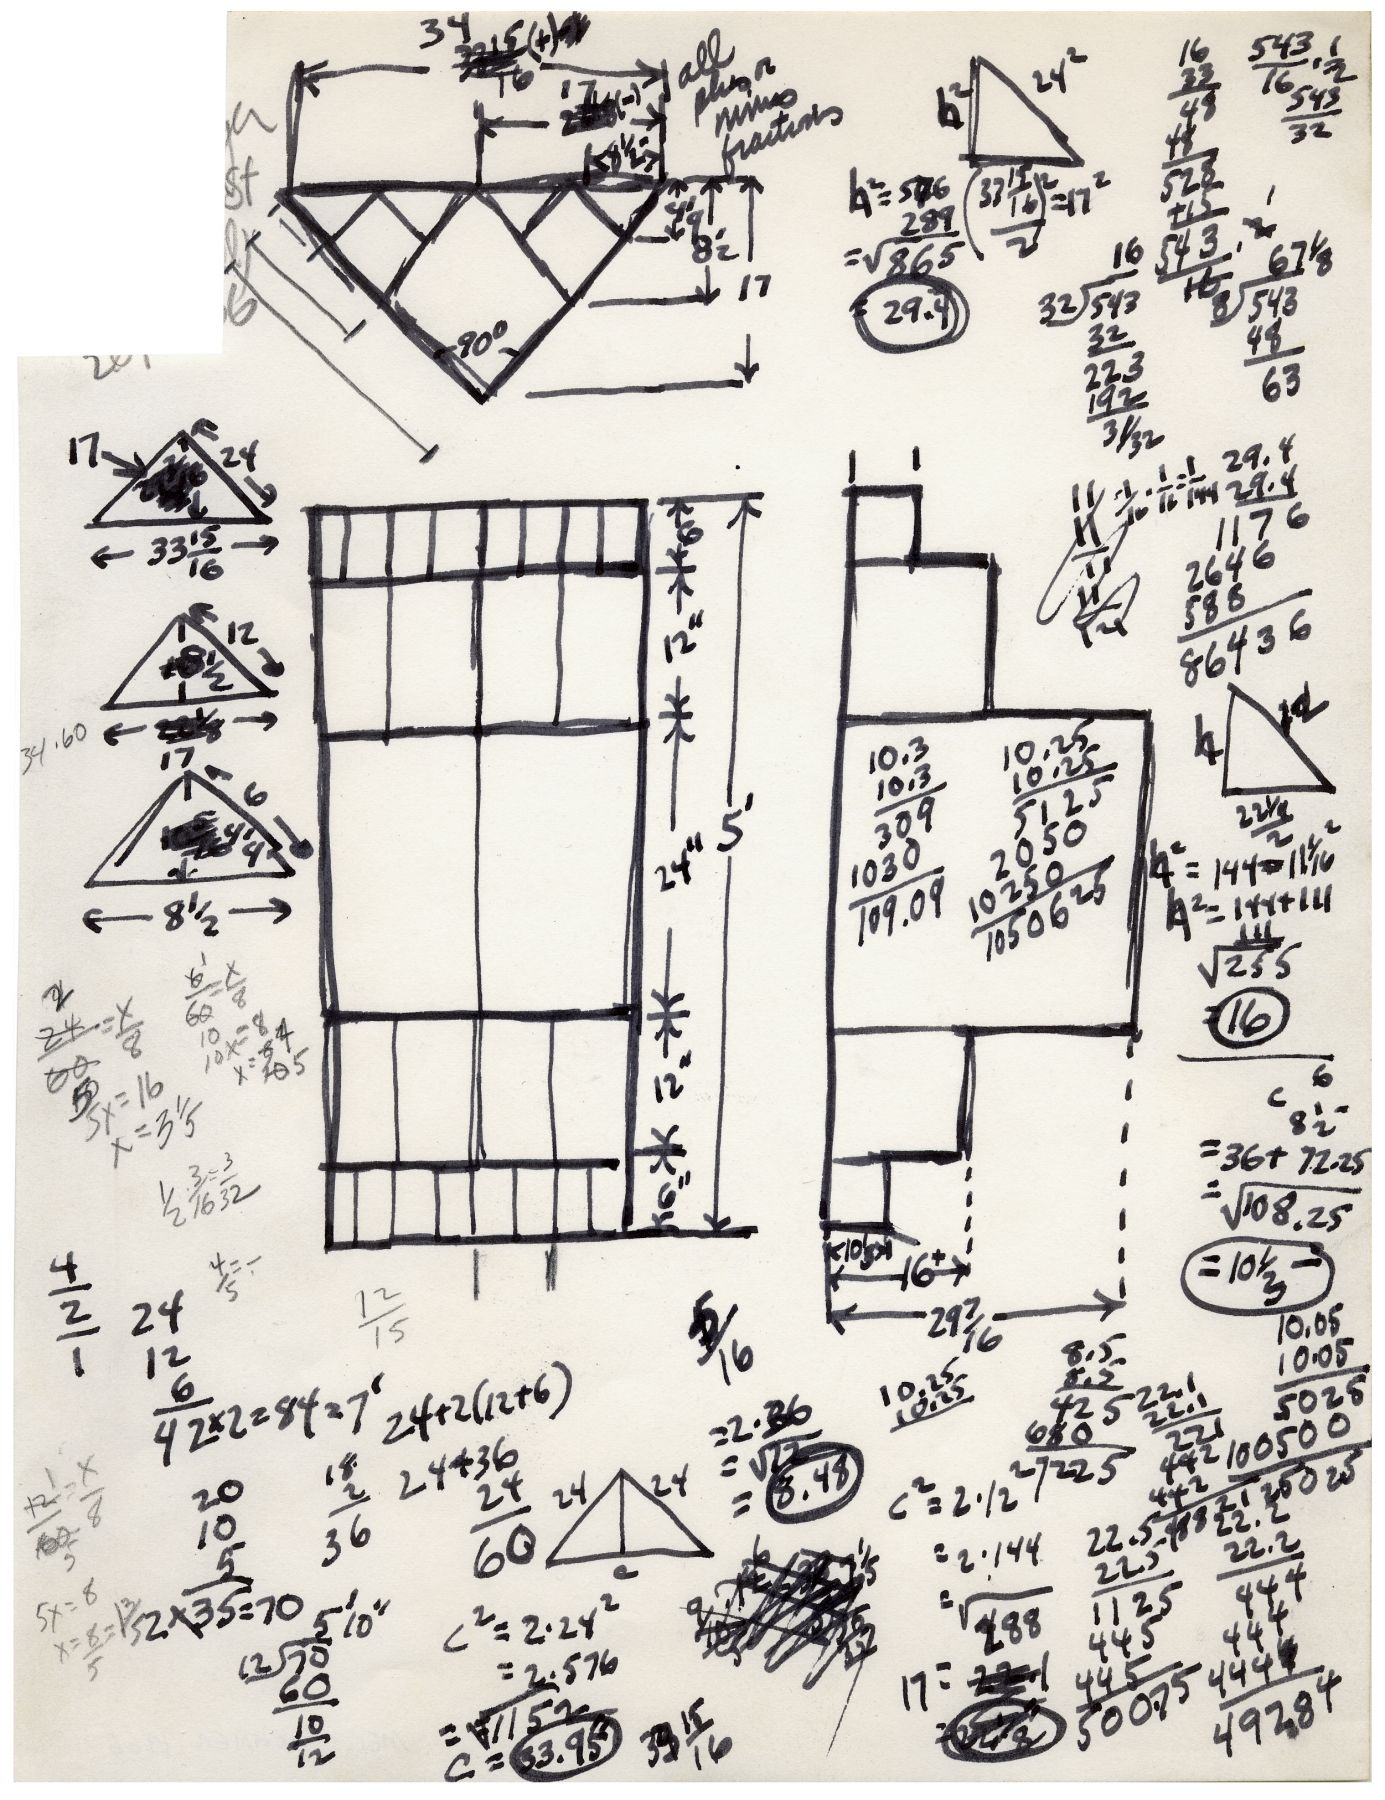 Mel Bochner,Untitled (Study for Cantor's Paradox), 1966. Ink and pencil on paper, 10 3/4 x 8 1/8 inches.